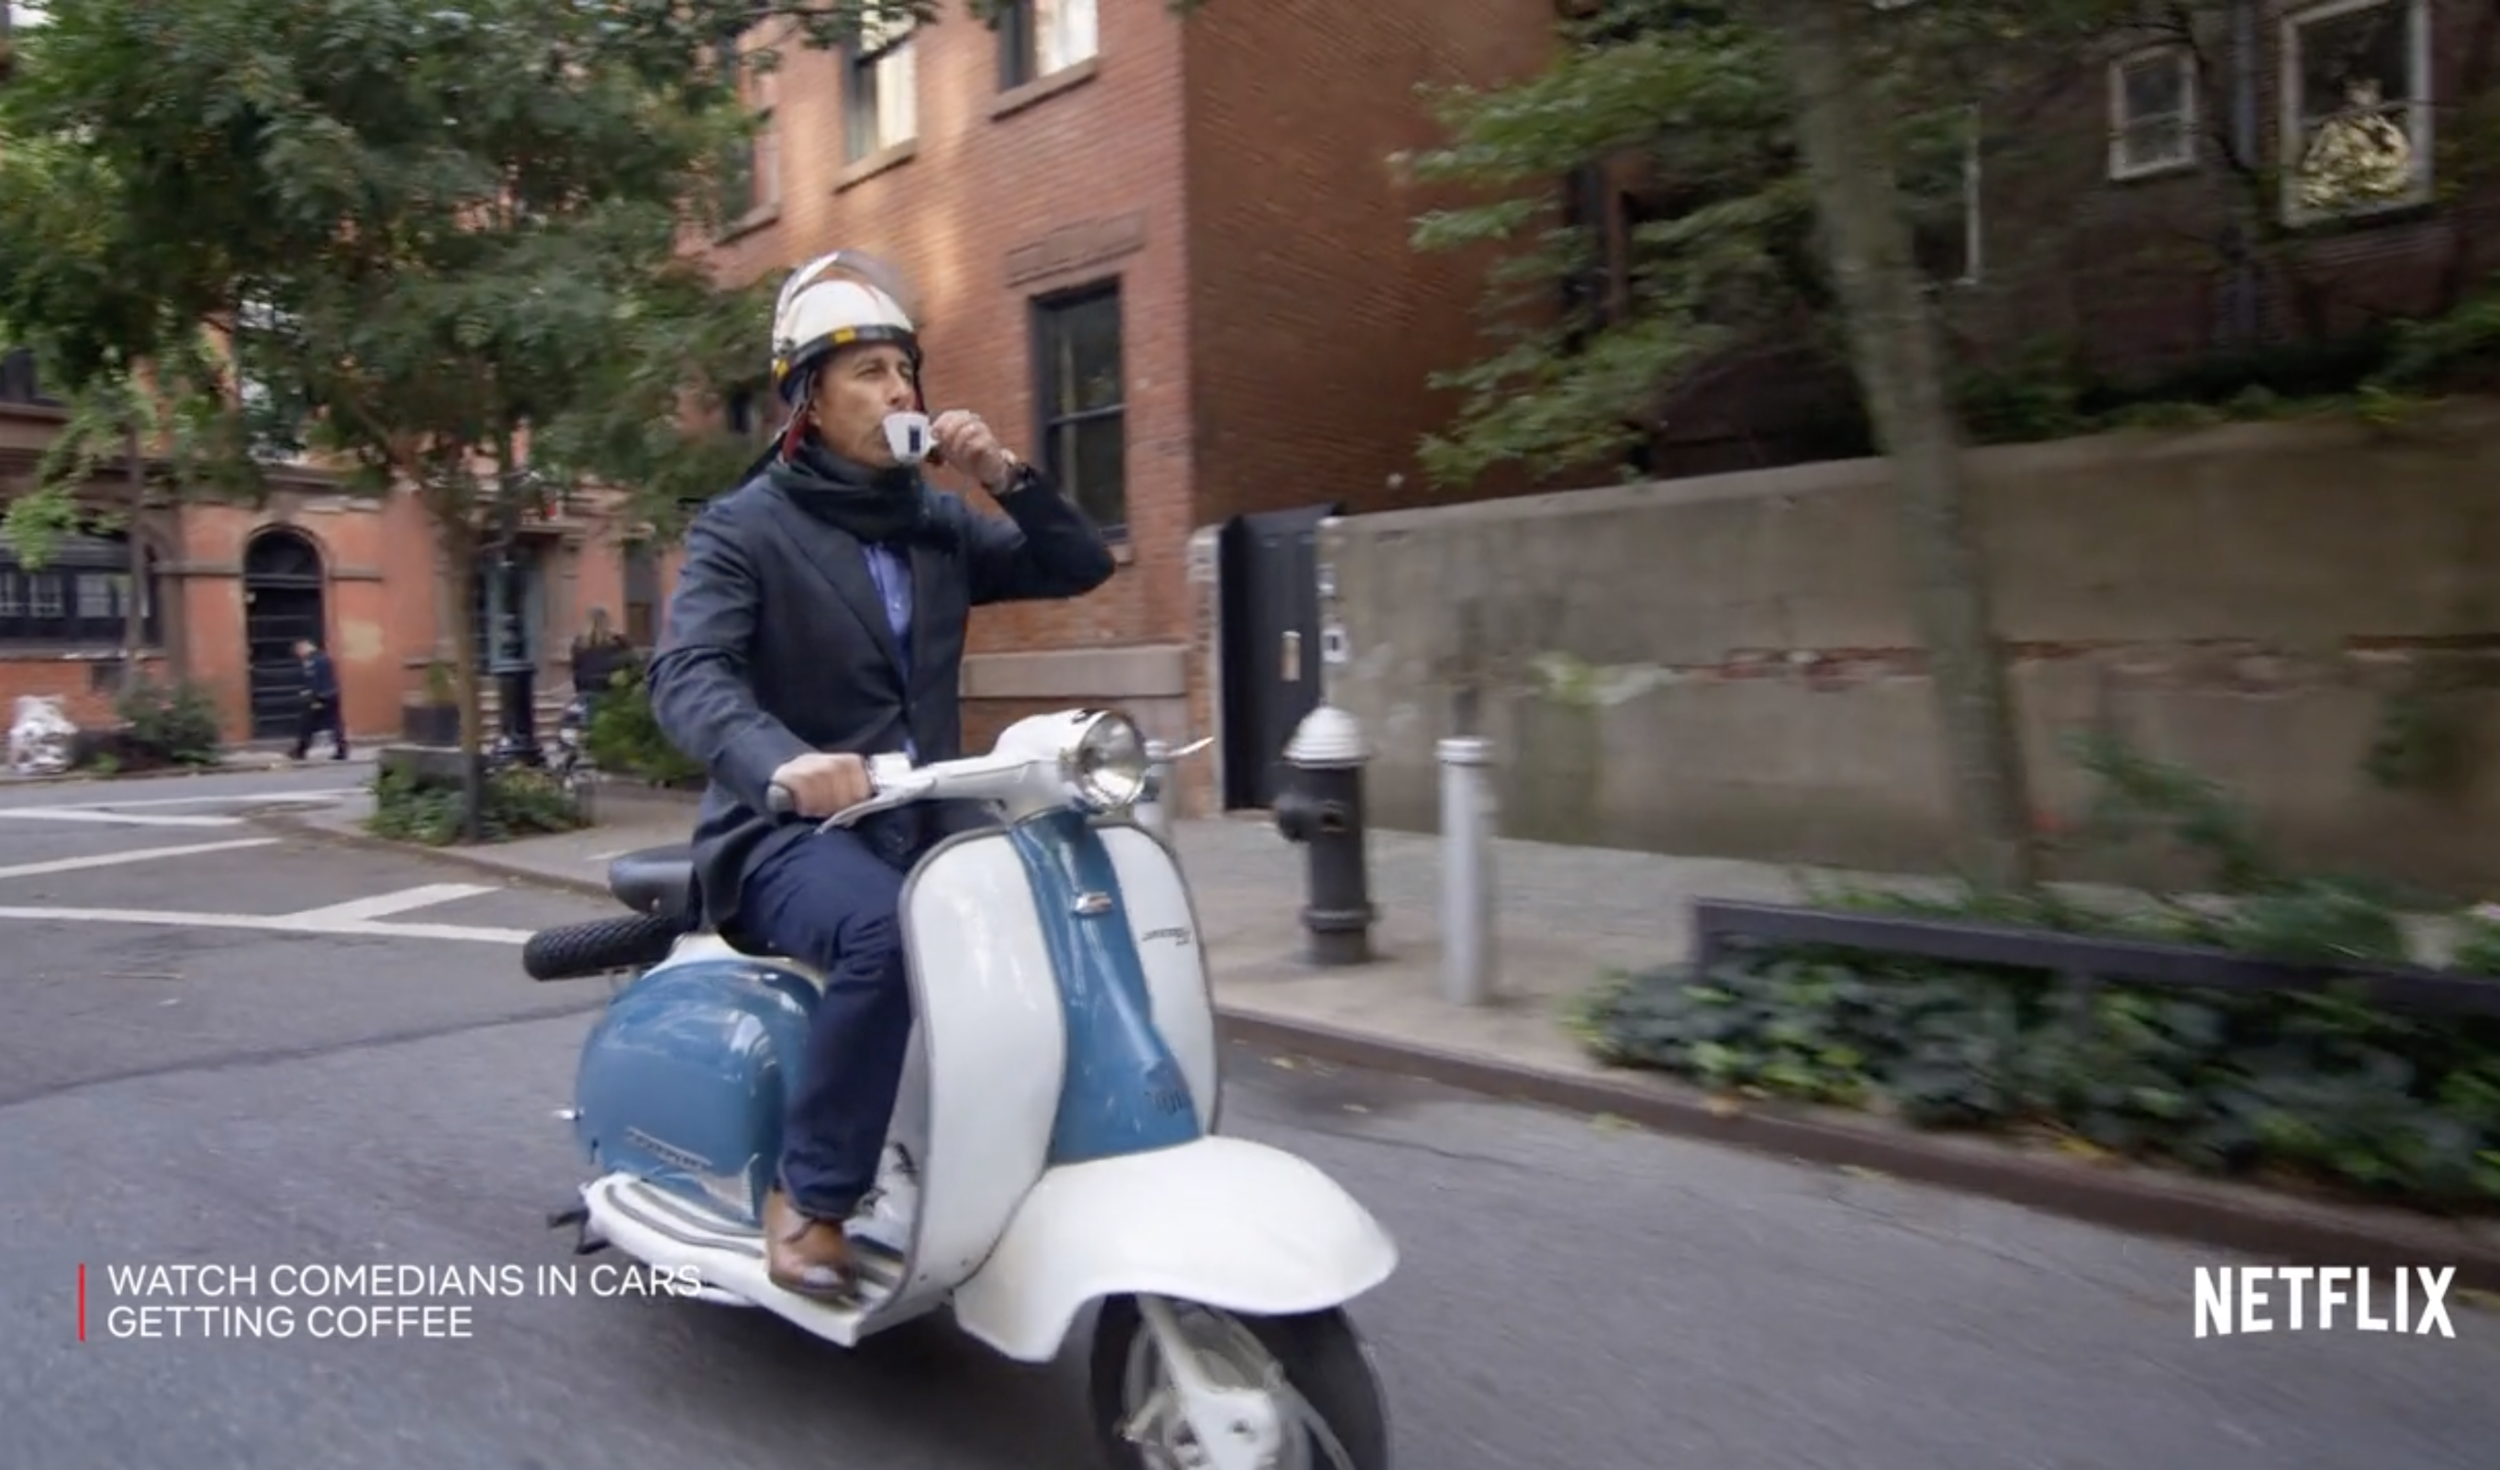 LAVAZZA: COMEDIANS IN CARS GETTING COFFEE S12 PARTNERSHIP | BROADCAST -